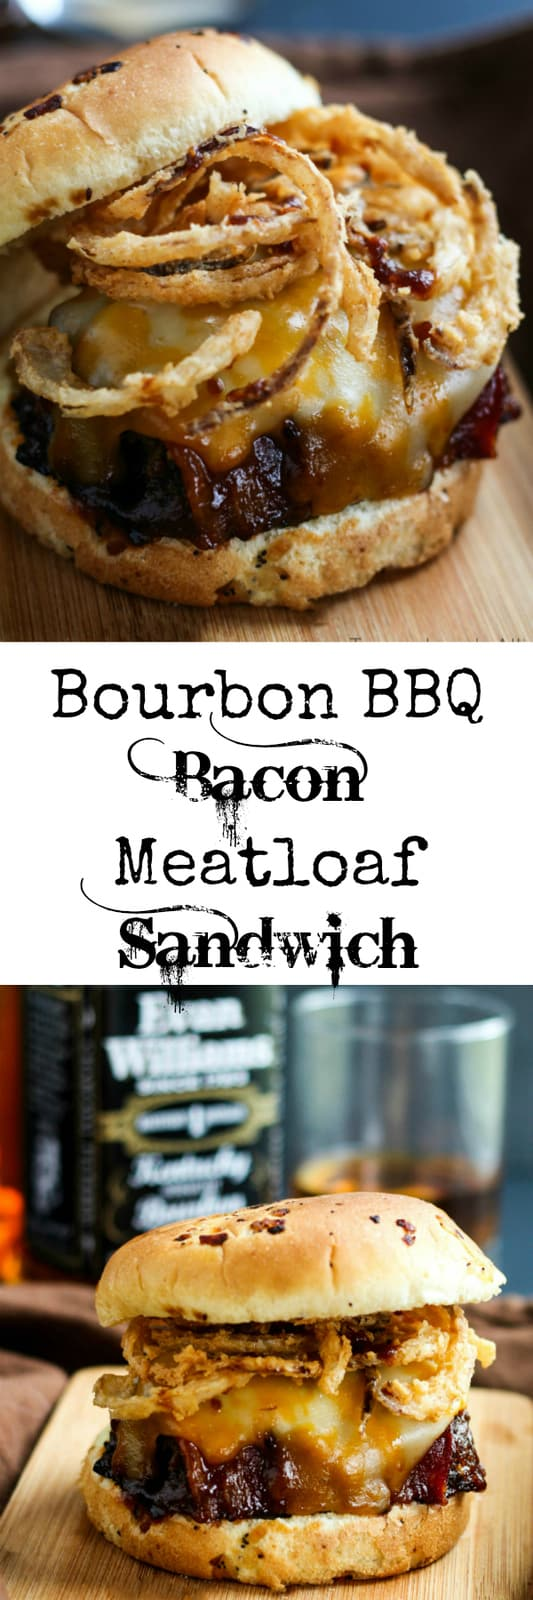 BBQ Bourbon Bacon Meatloaf Sandwich Collage